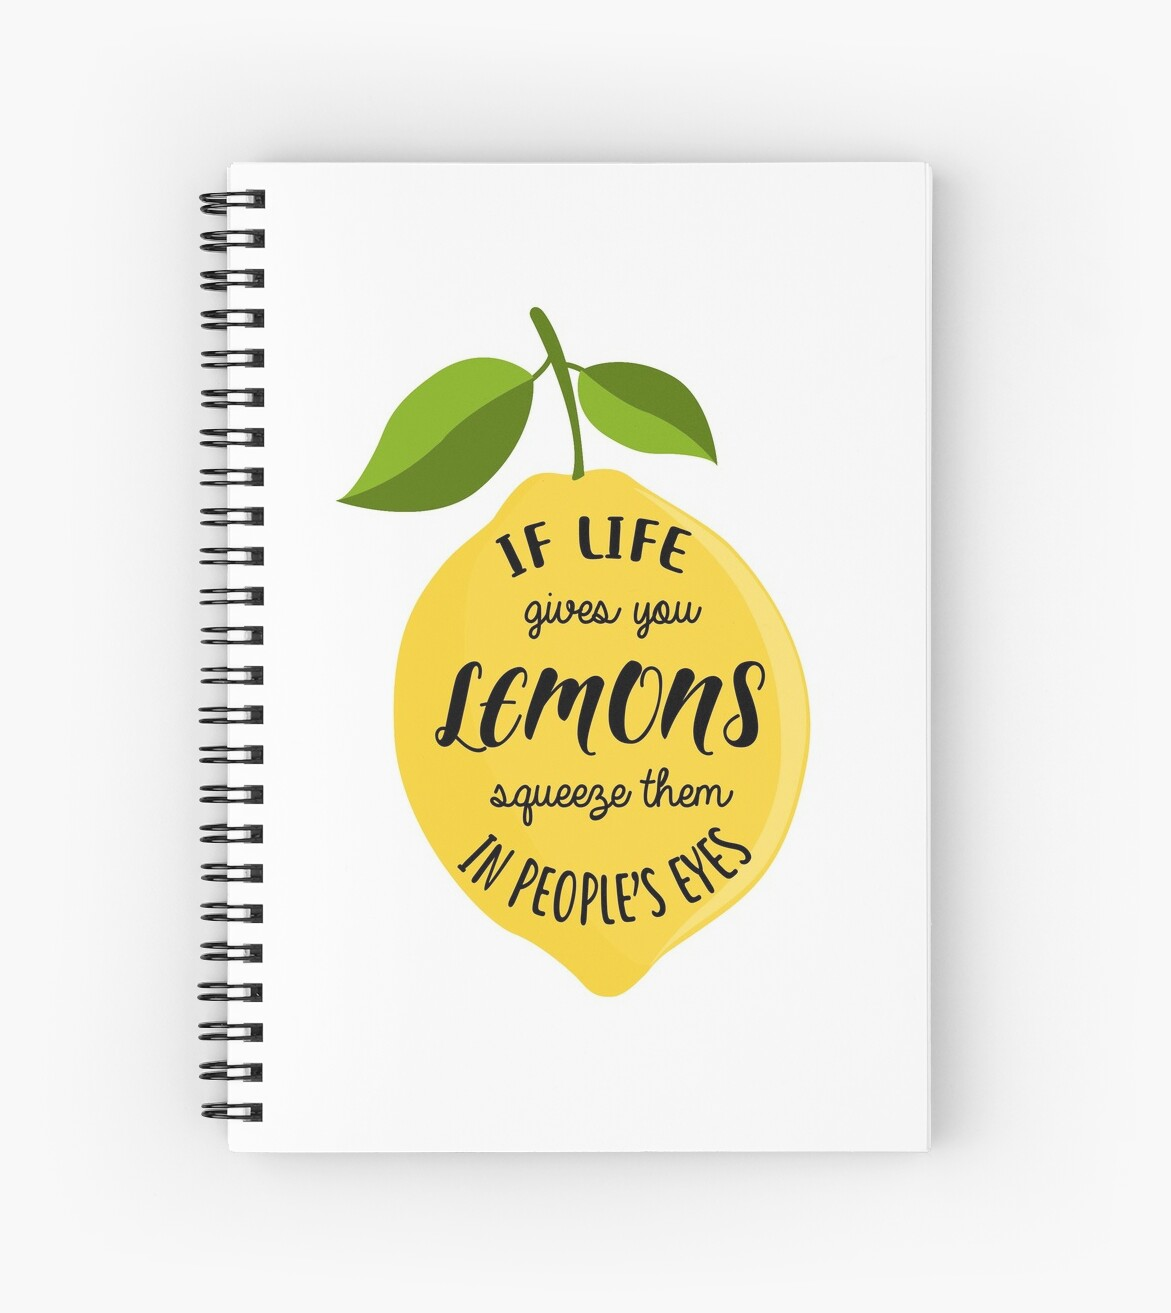 If life gives you lemons squeeze them in people's eyes by kristelco